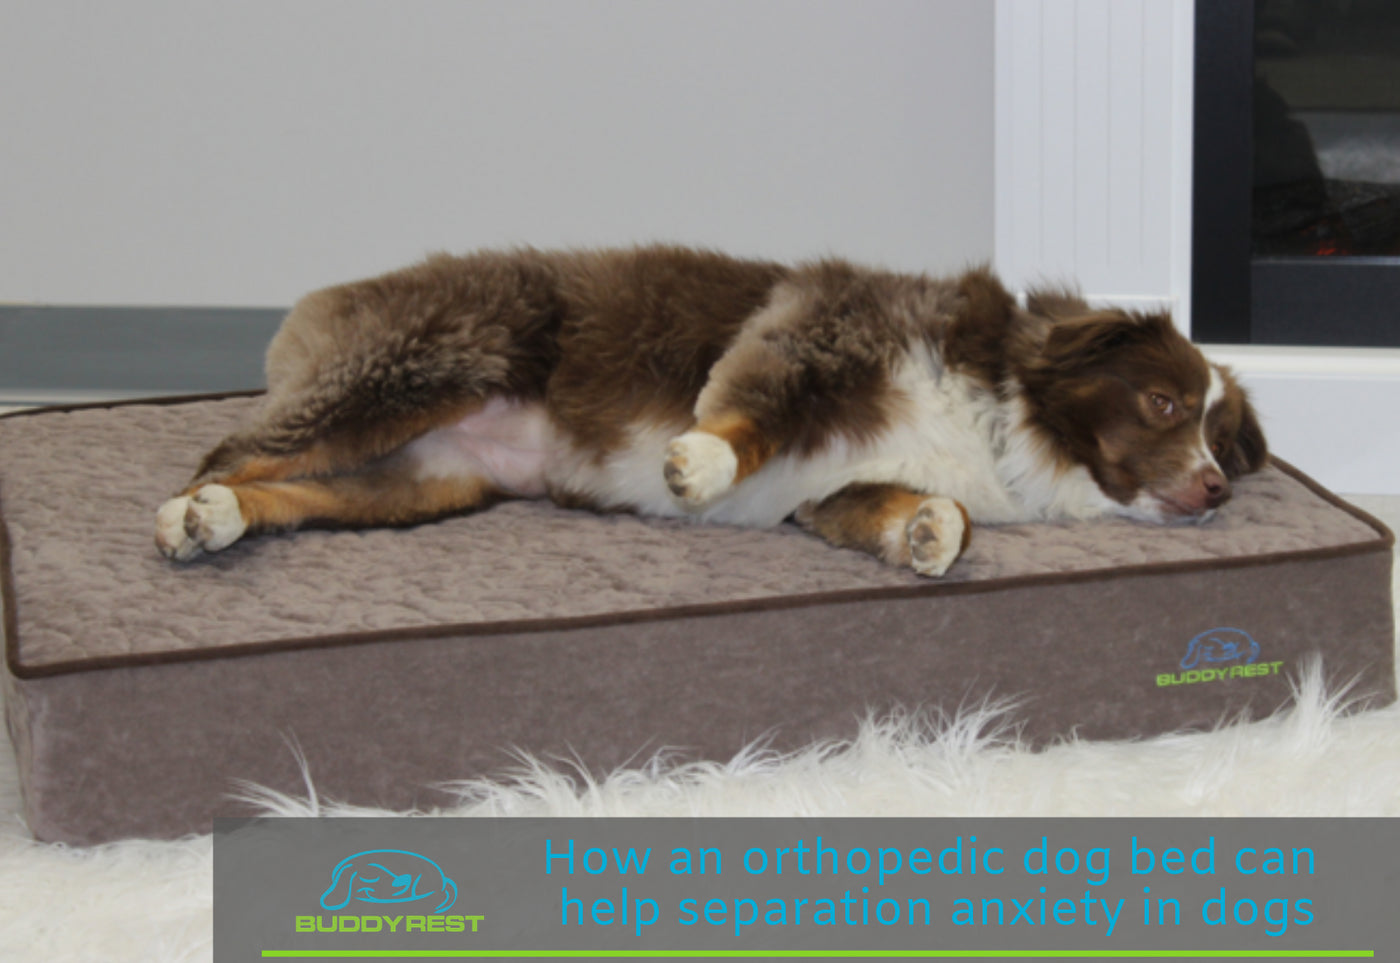 How an orthopedic dog bed can help separation anxiety in